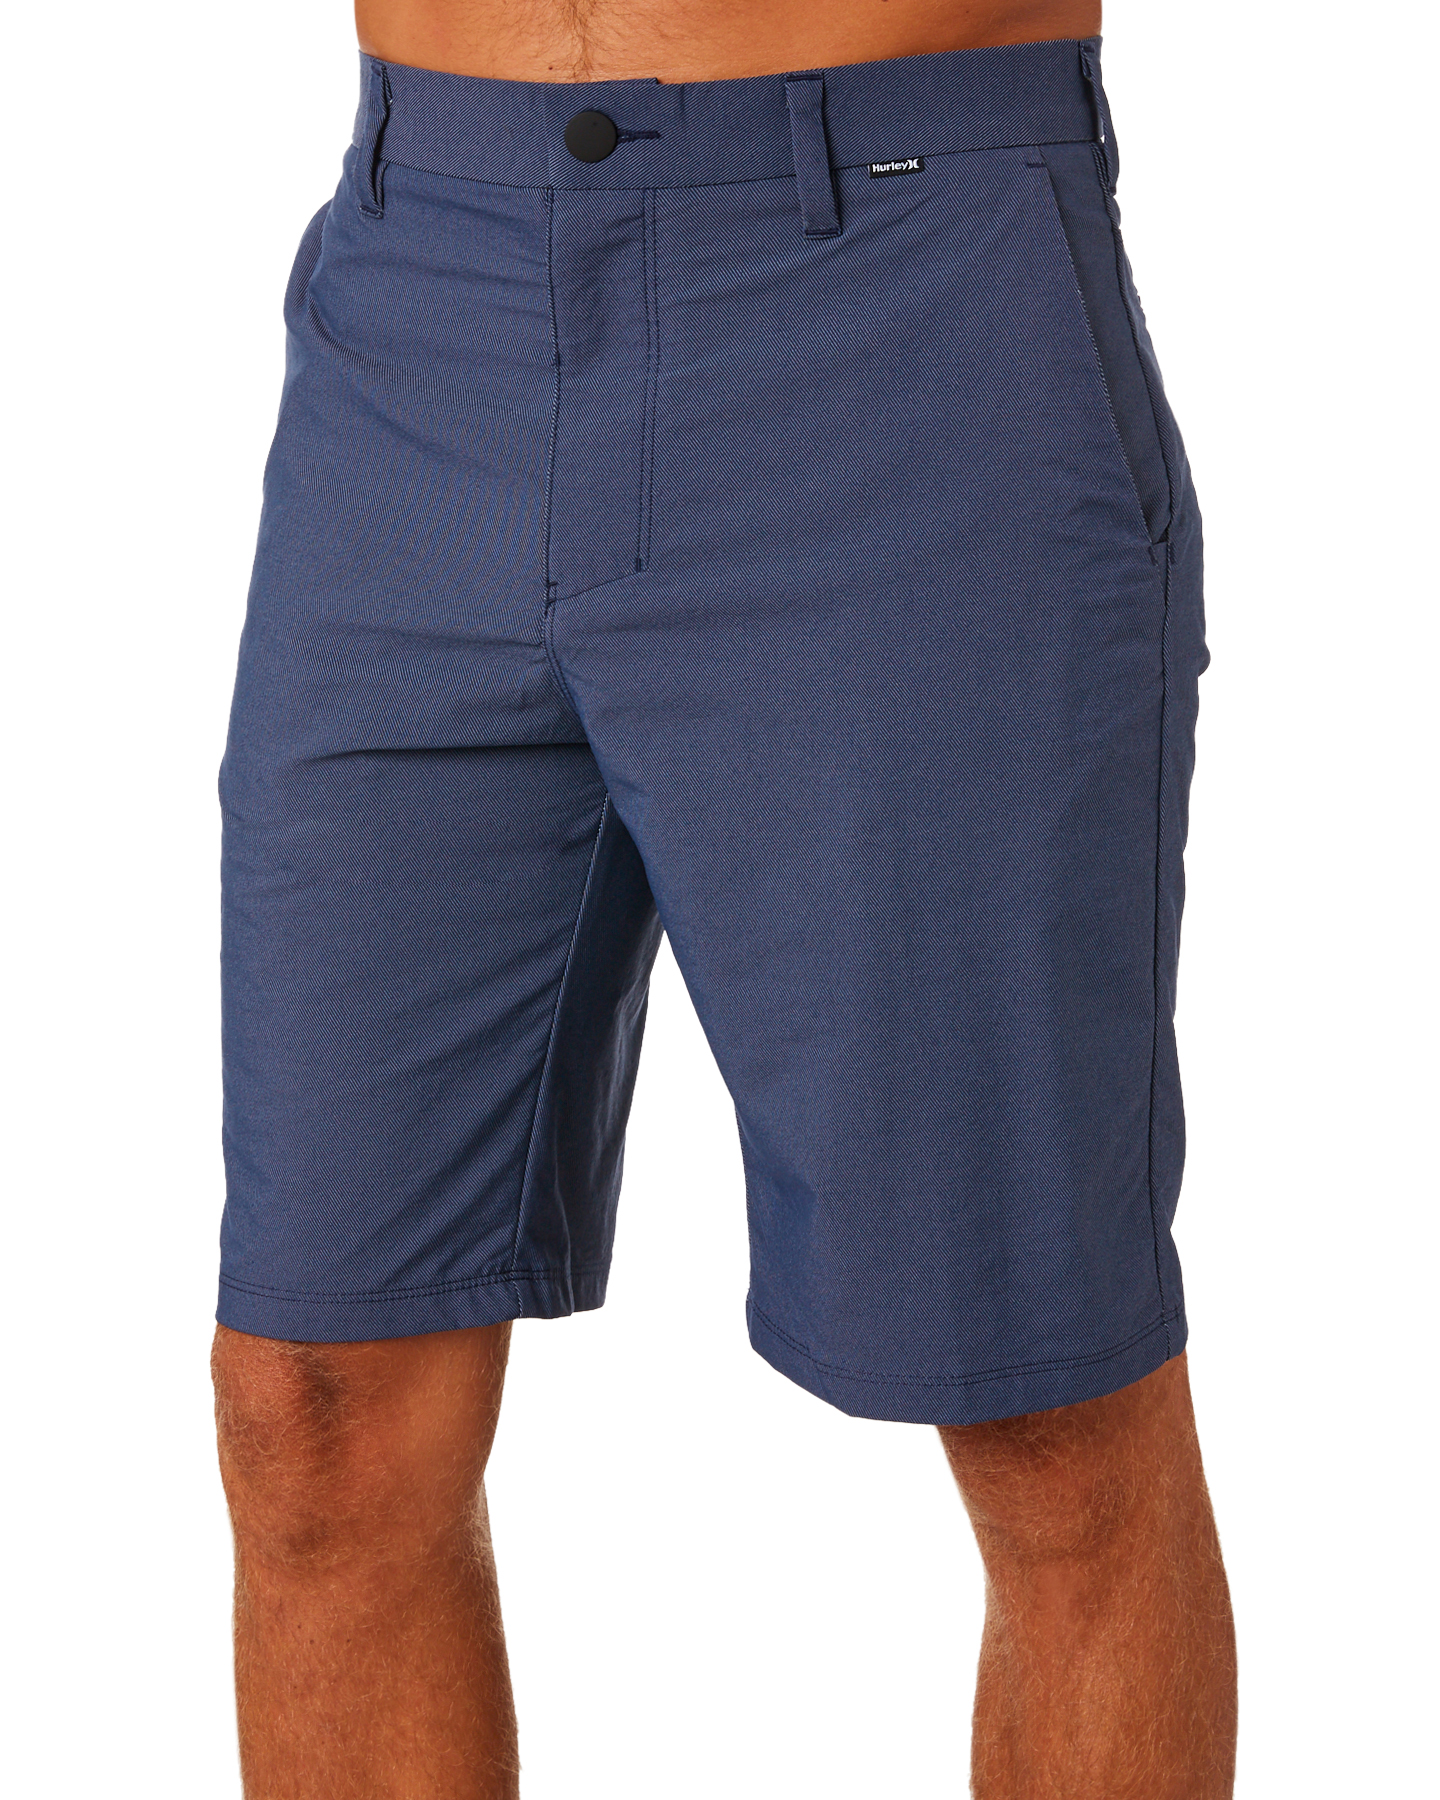 New-Hurley-Men-039-s-Dri-Fit-Chino-Short-21In-Mens-Short-Fitted-Spandex-Grey thumbnail 17